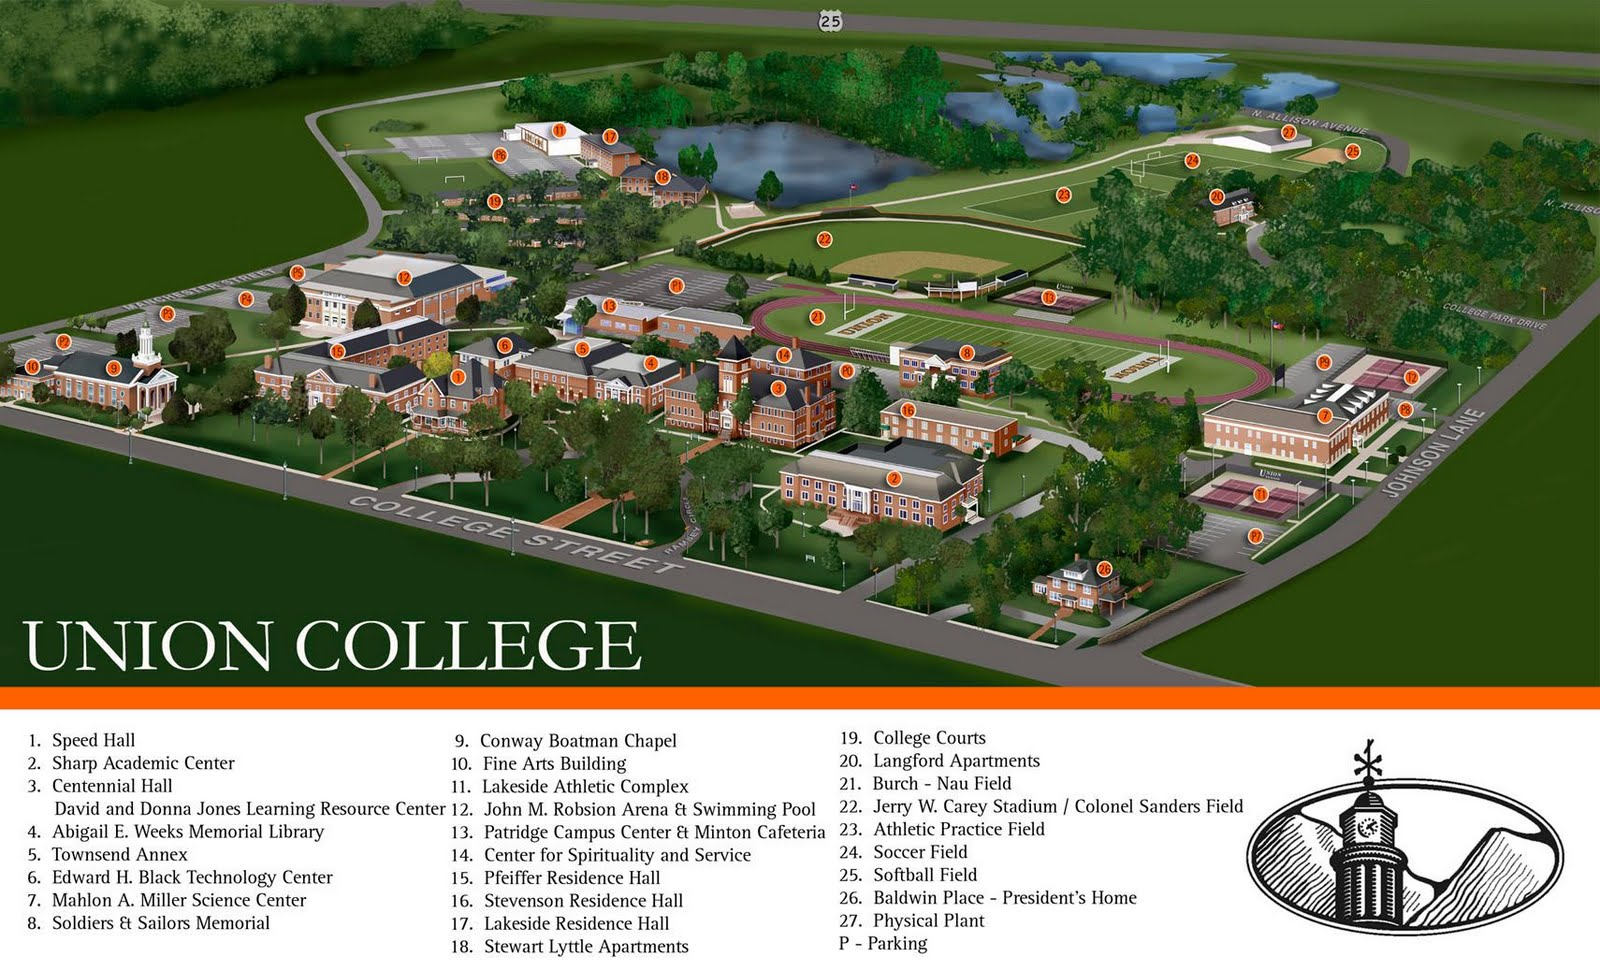 university of the pacific campus map html with Union College 11 on Suv airport maps further Uhc us furthermore Travel also Union College 11 likewise Pullman Washington College University.